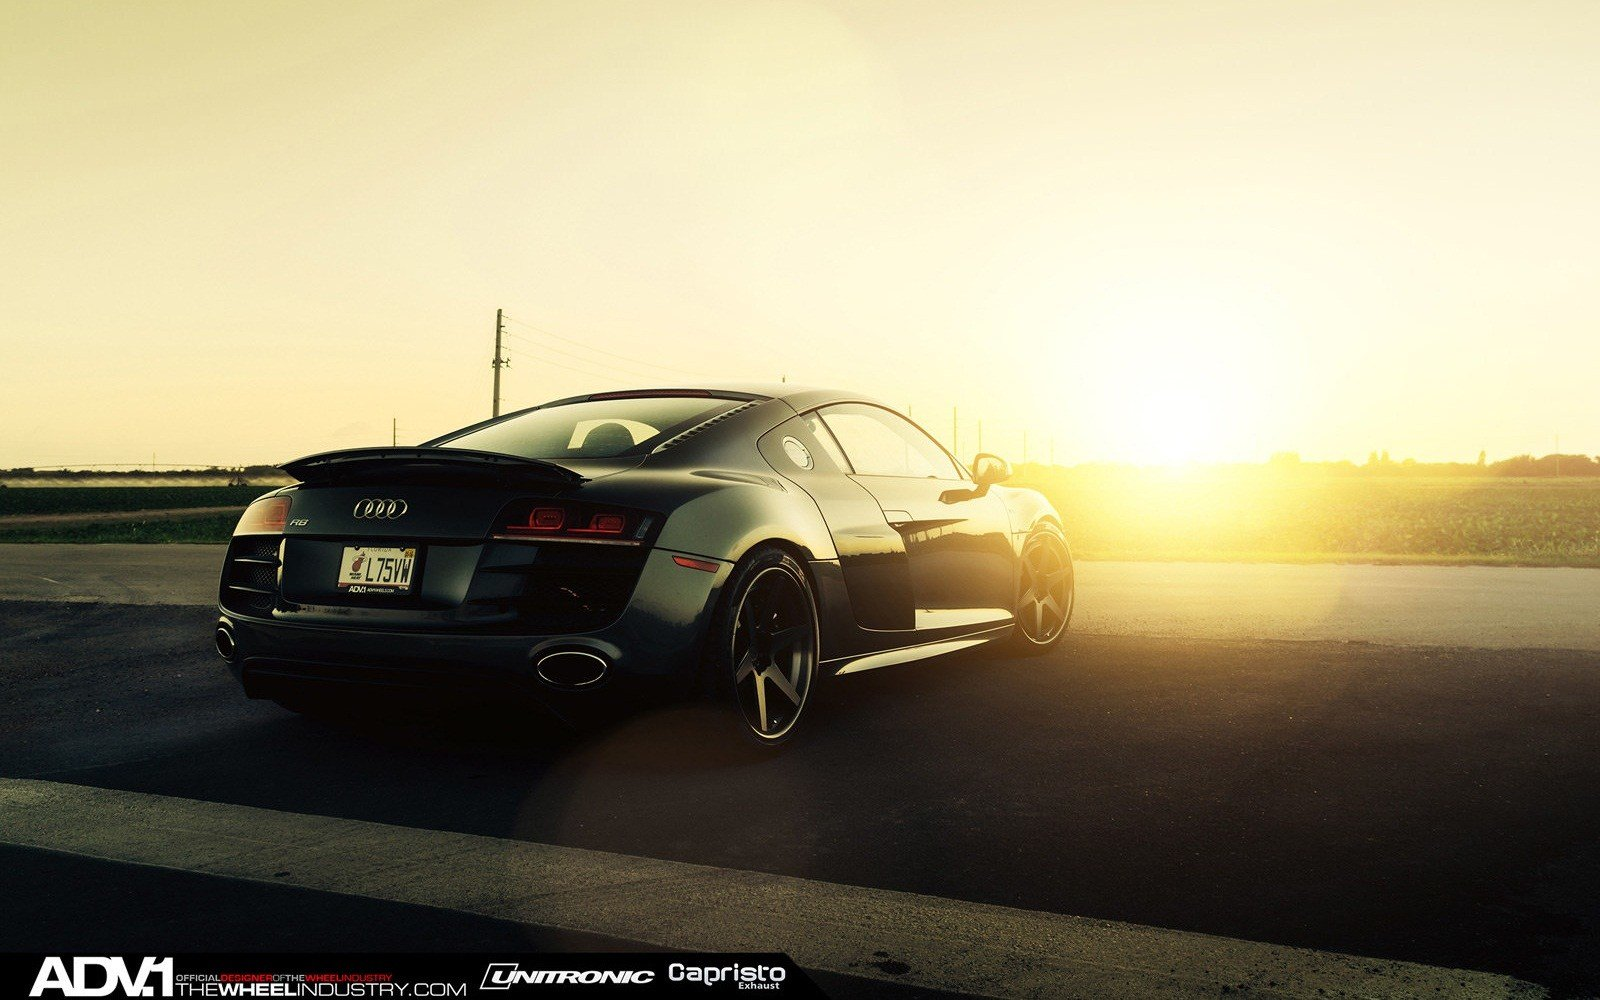 Latest 2014 Audi R8 On Adv1 Wheels Hot Photoshoot Sssupersports Com Free Download